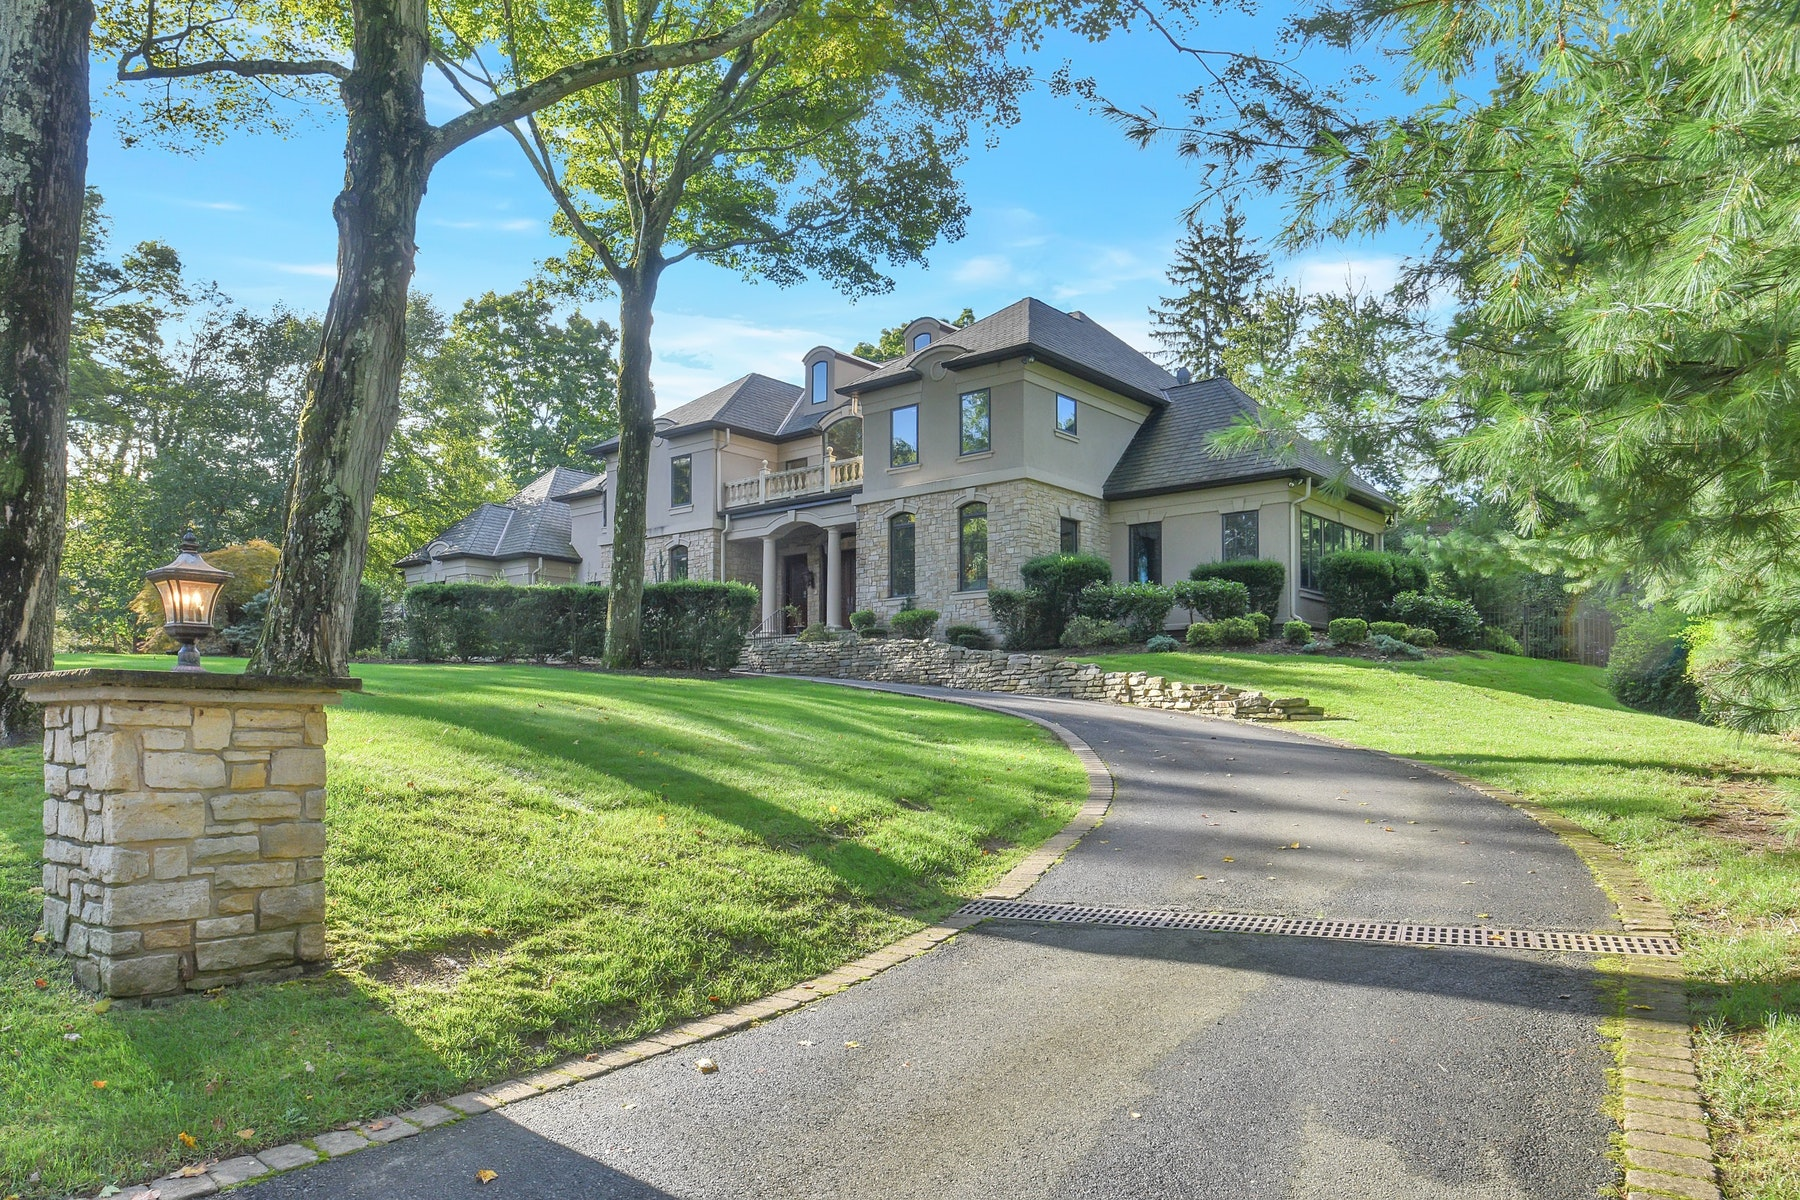 Single Family Home for Sale at Breathtaking Custom Estate 38 Weiss Rd., Upper Saddle River, New Jersey 07458 United States